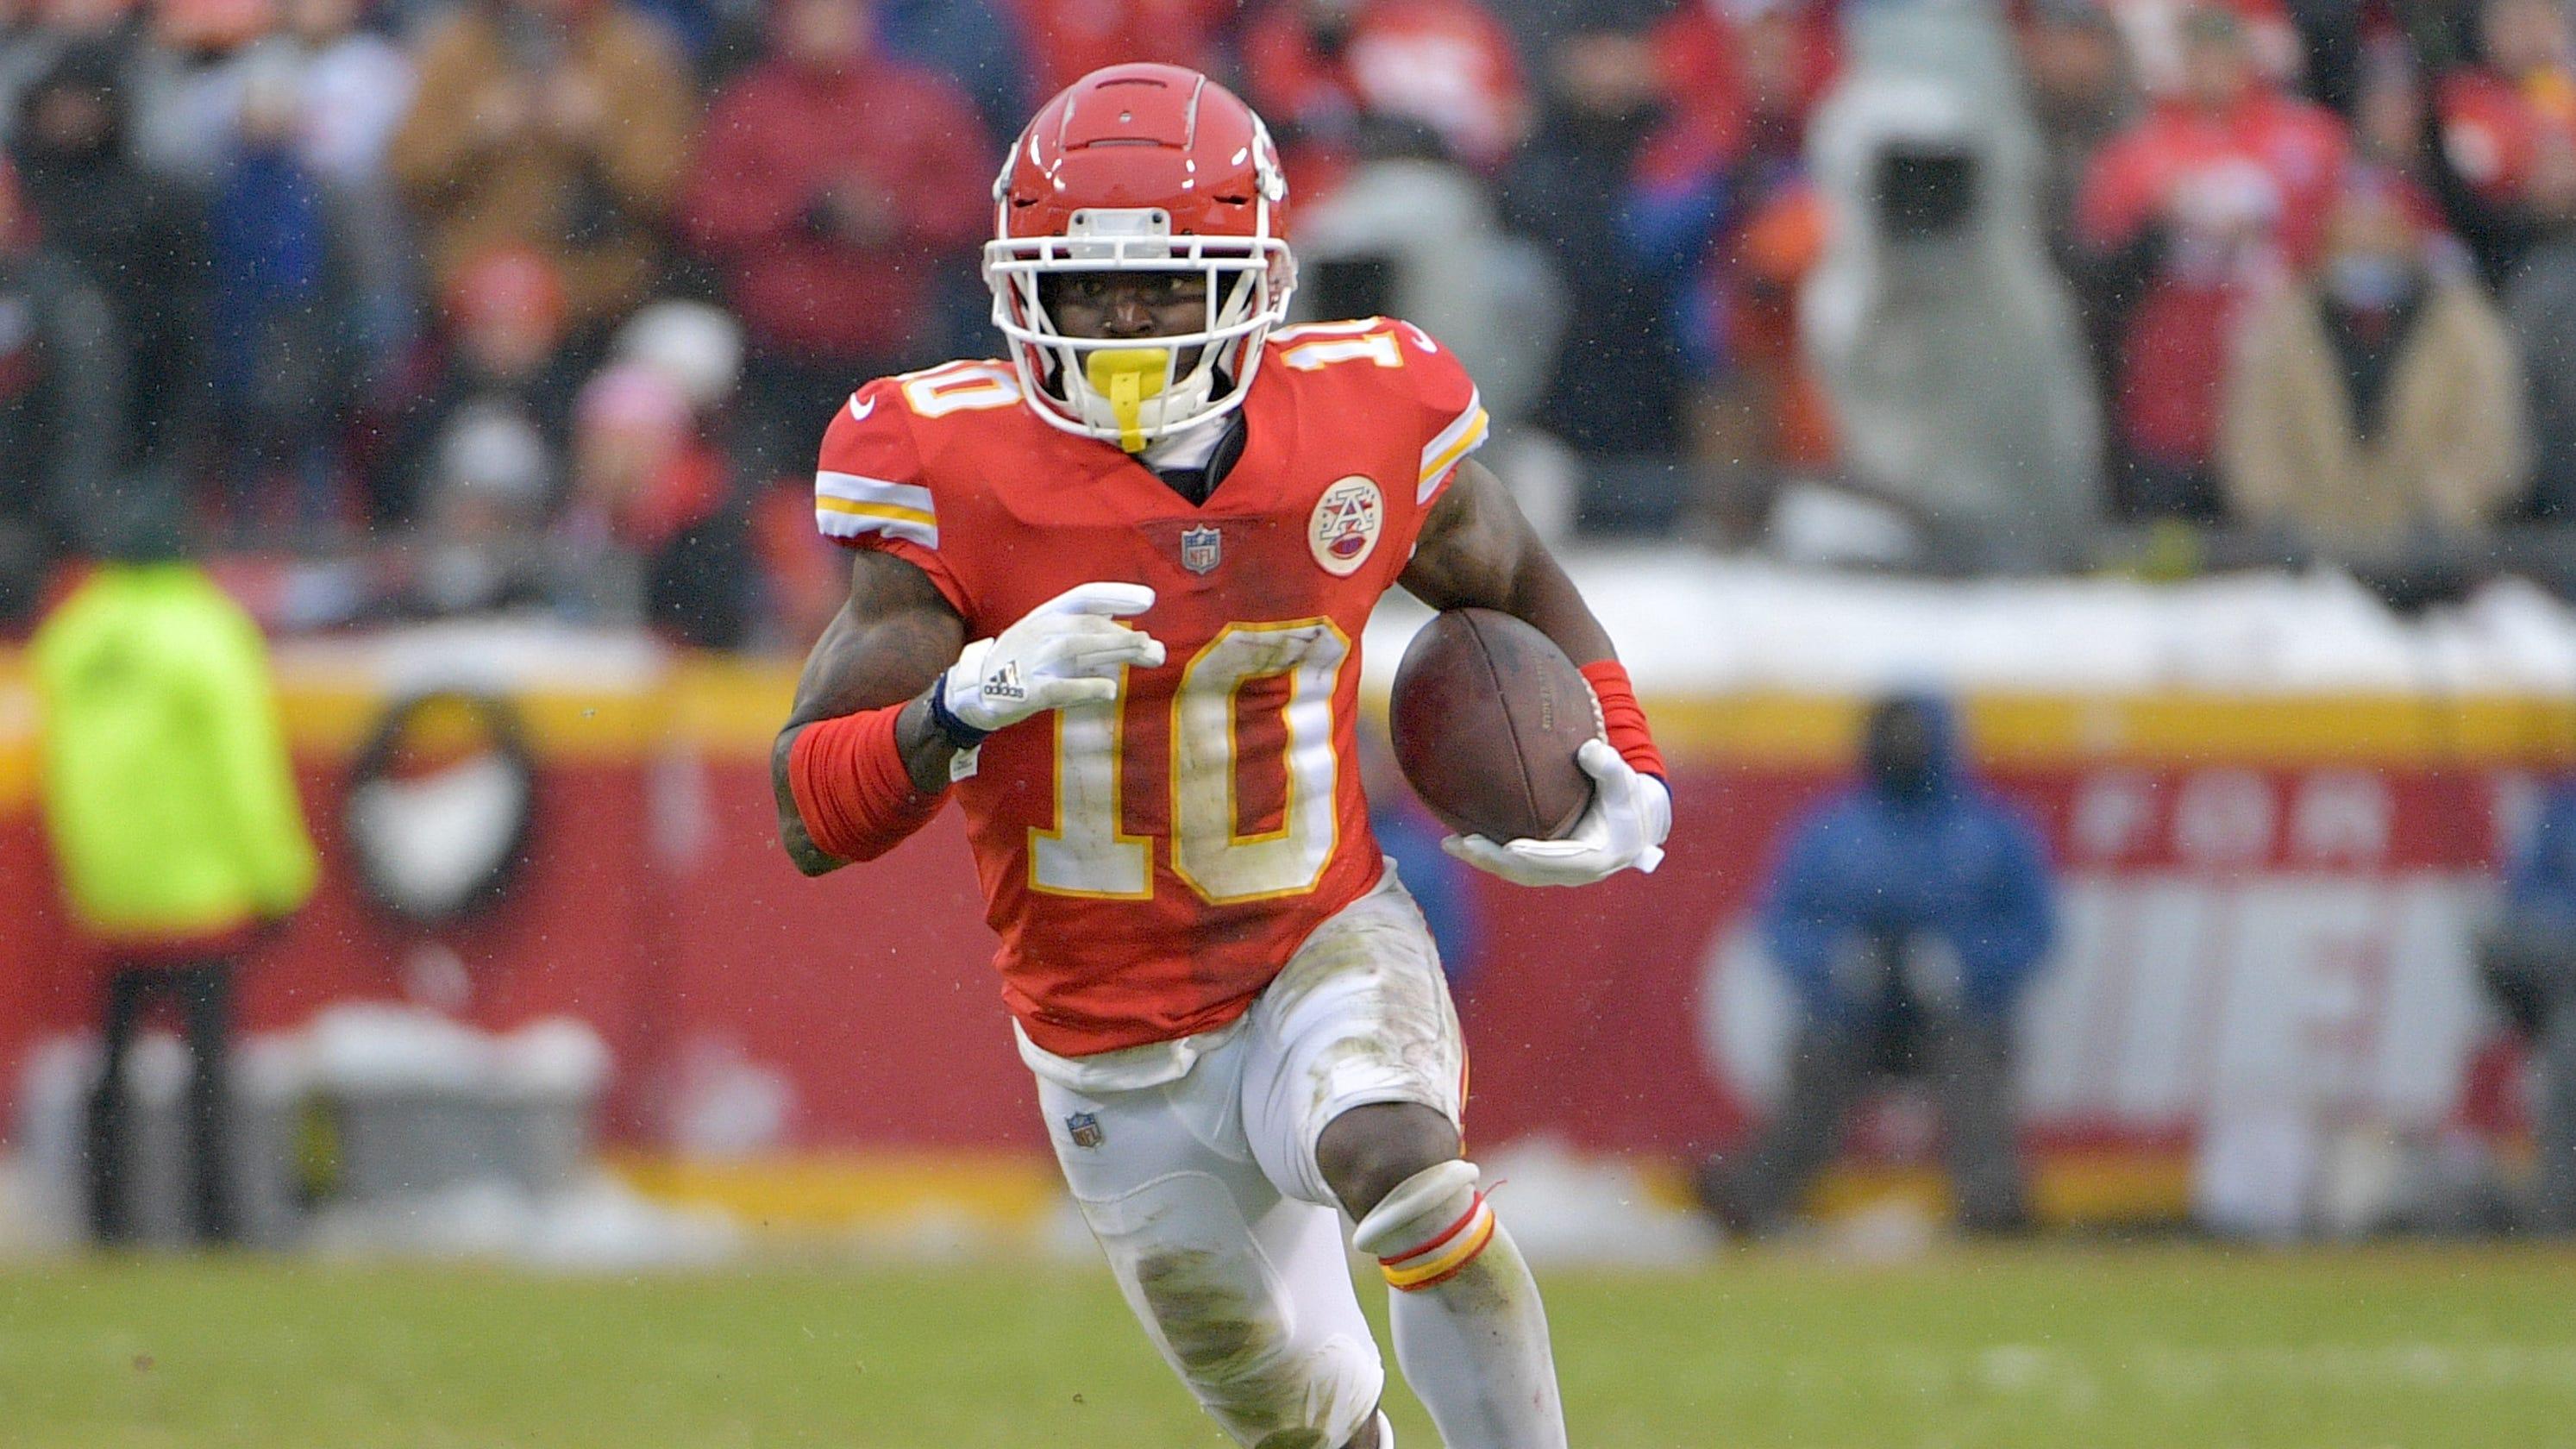 Chiefs WR Tyreek Hill linked to investigation regarding alleged battery 8459dbe3e